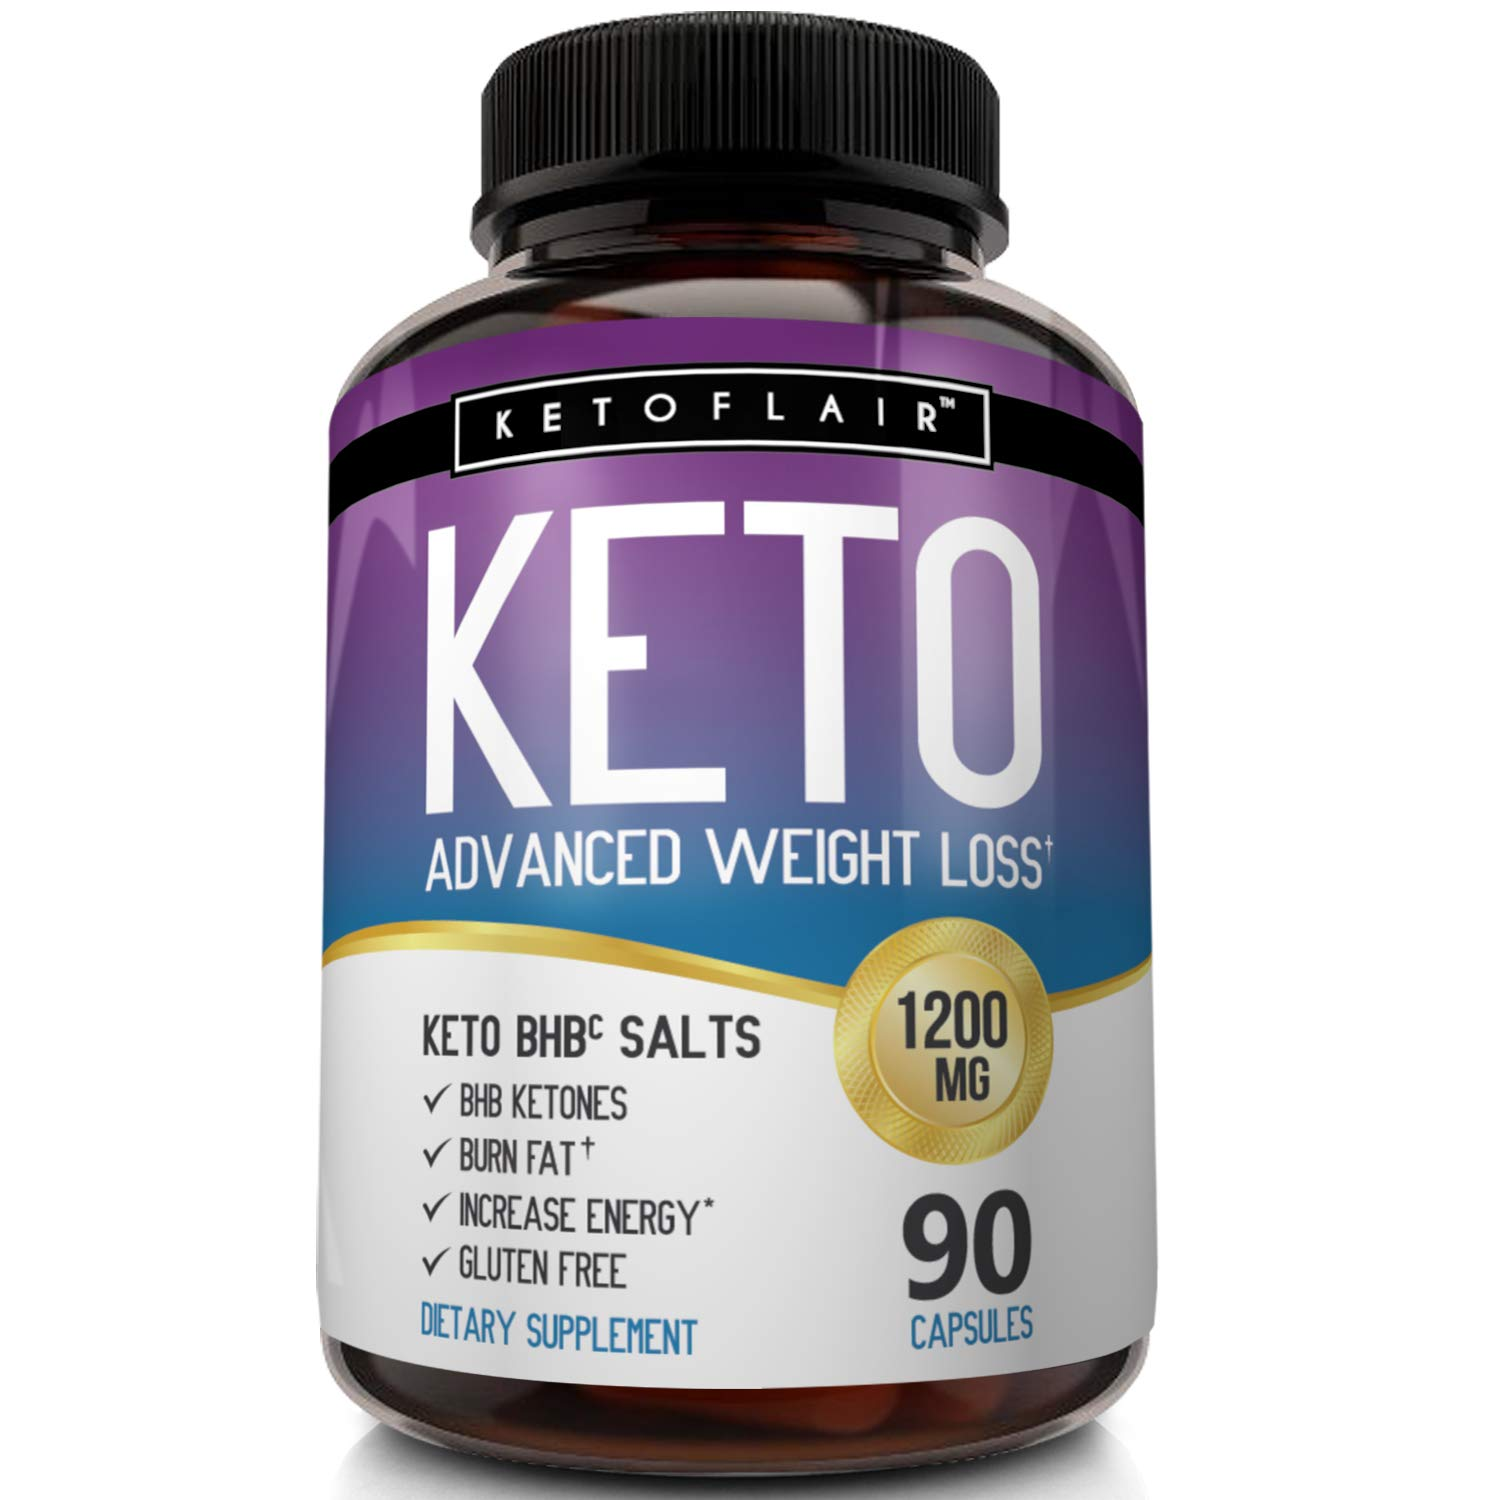 Best Keto Diet Pills GoBHB 1200mg, 90 Capsules Advanced Weight Loss Ketosis Supplement - Natural BHB Salts (beta hydroxybutyrate) Ketogenic Fat Burner, Carb Blocker, Non-GMO - Best Weight Loss Support by NutriFlair (Image #6)